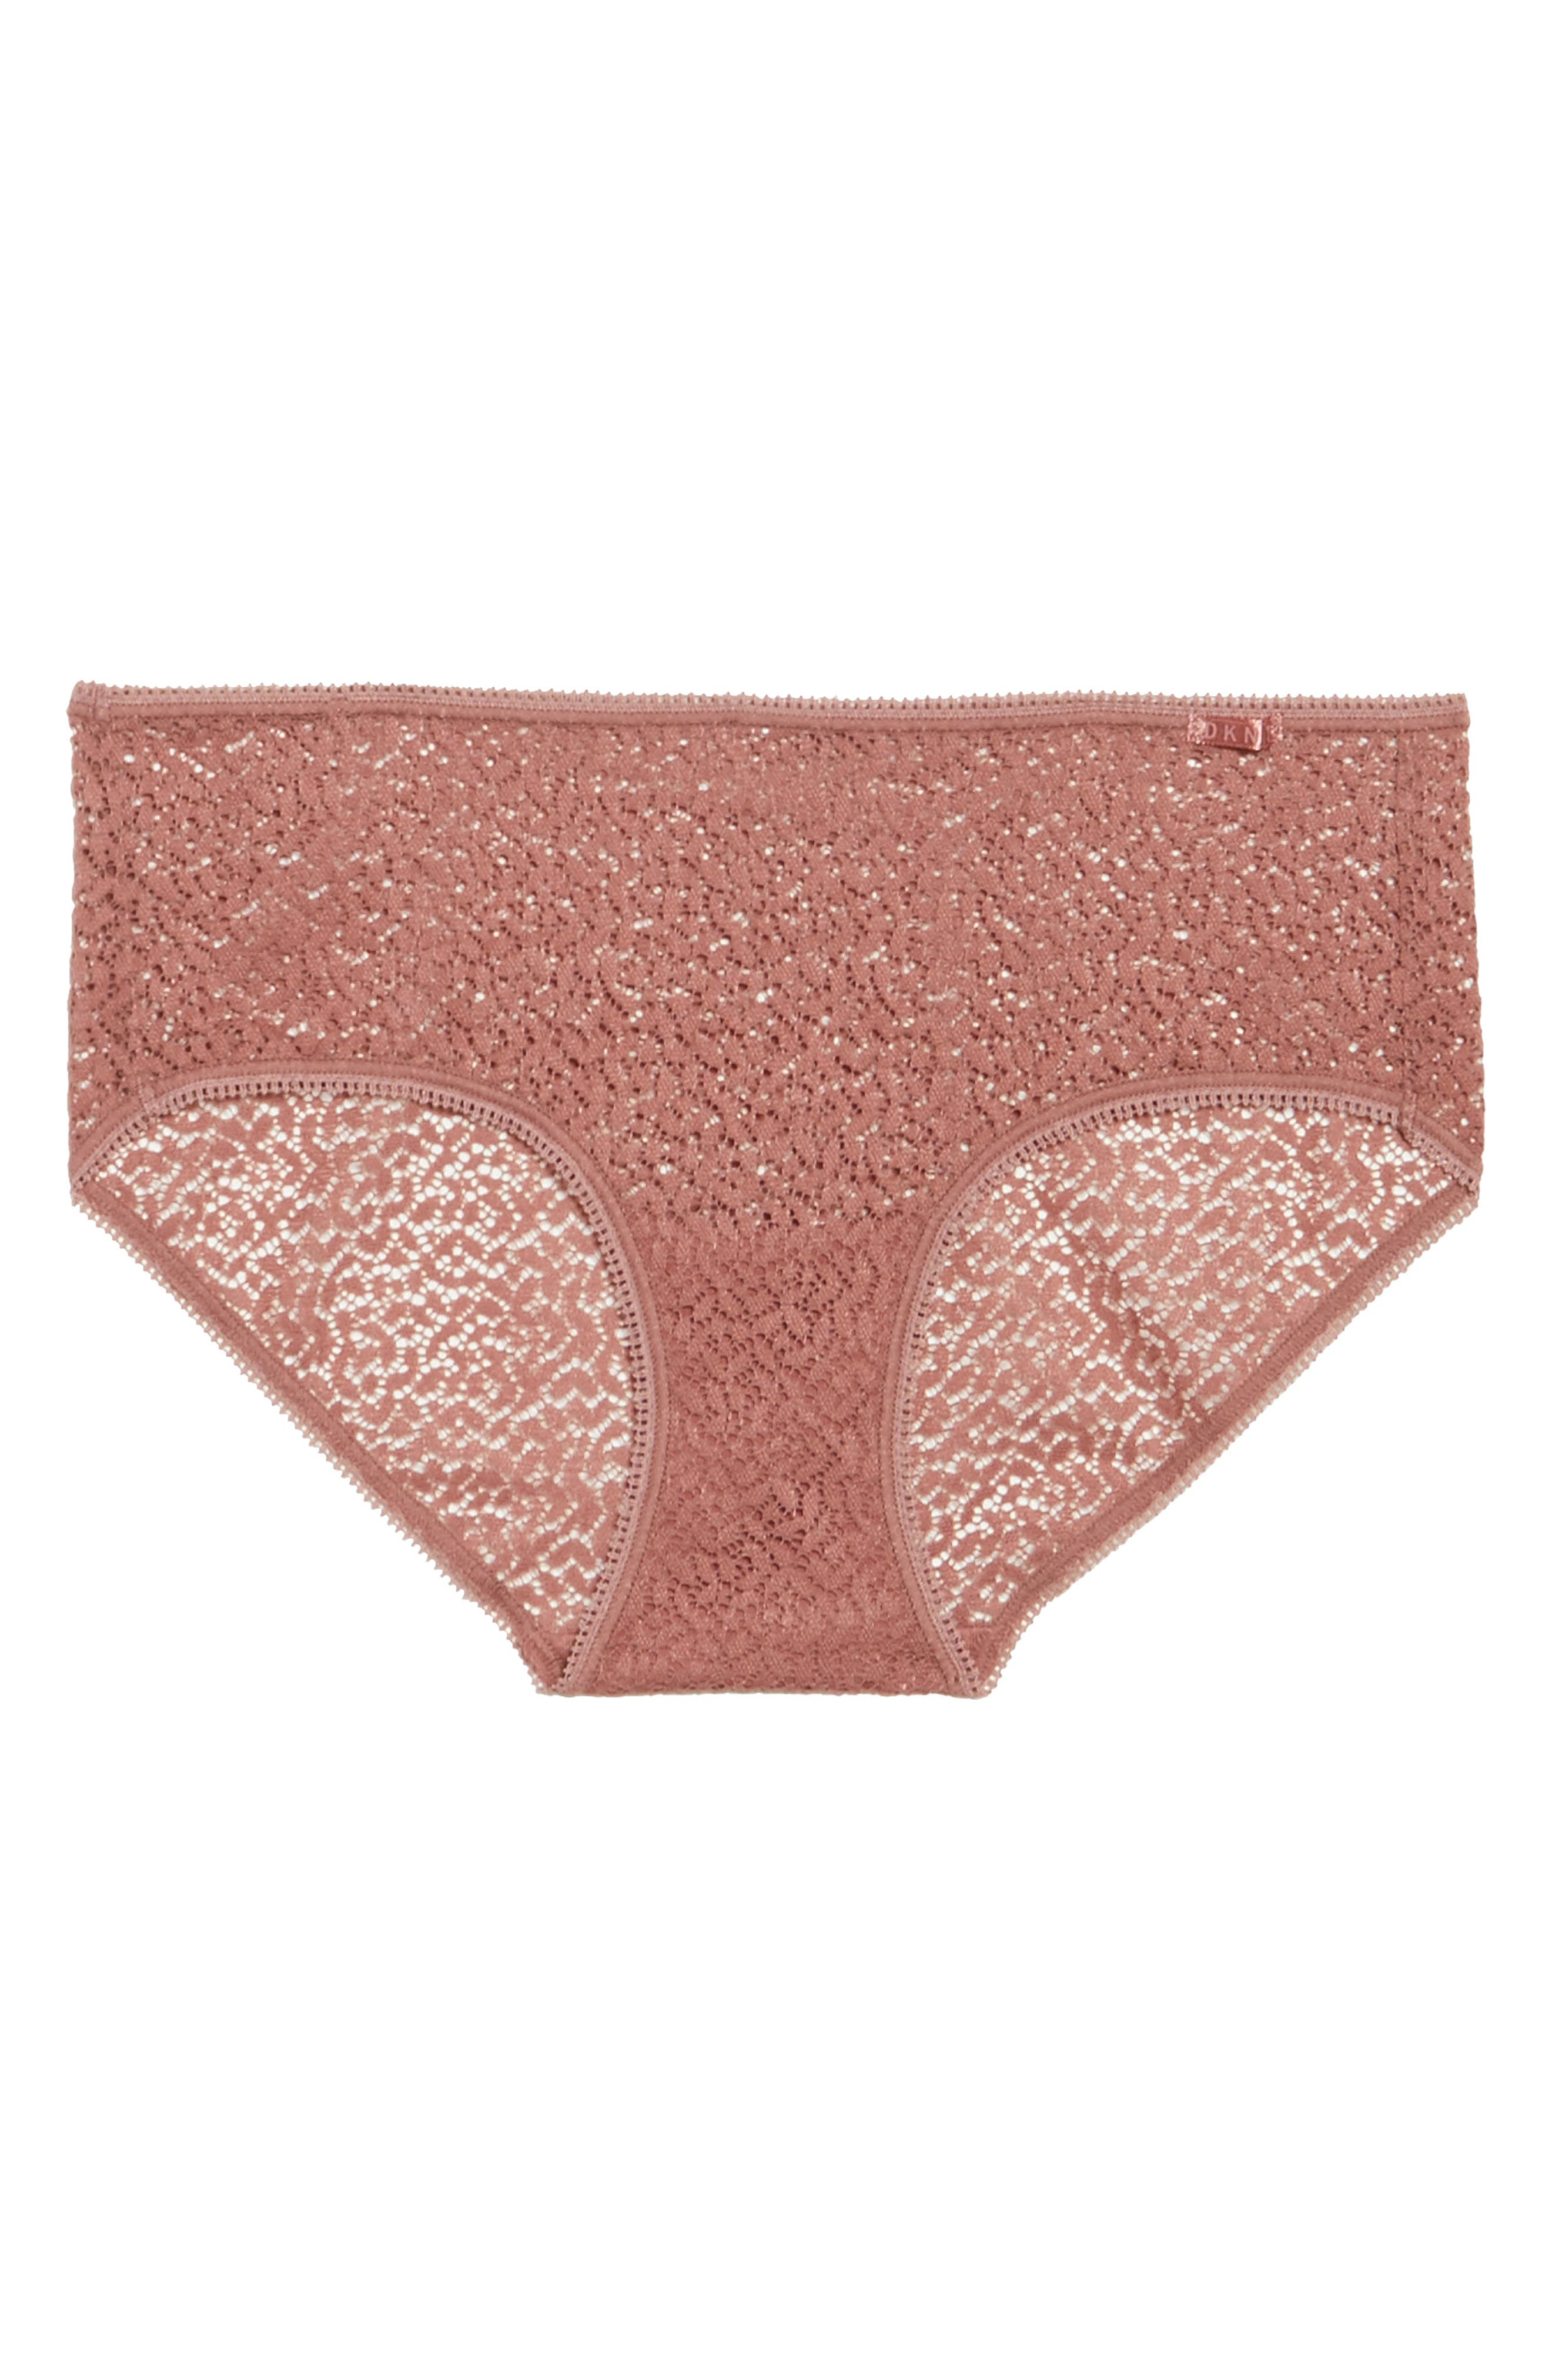 Modern Lace Hipster Panties,                             Alternate thumbnail 4, color,                             Rosewood 7Nq